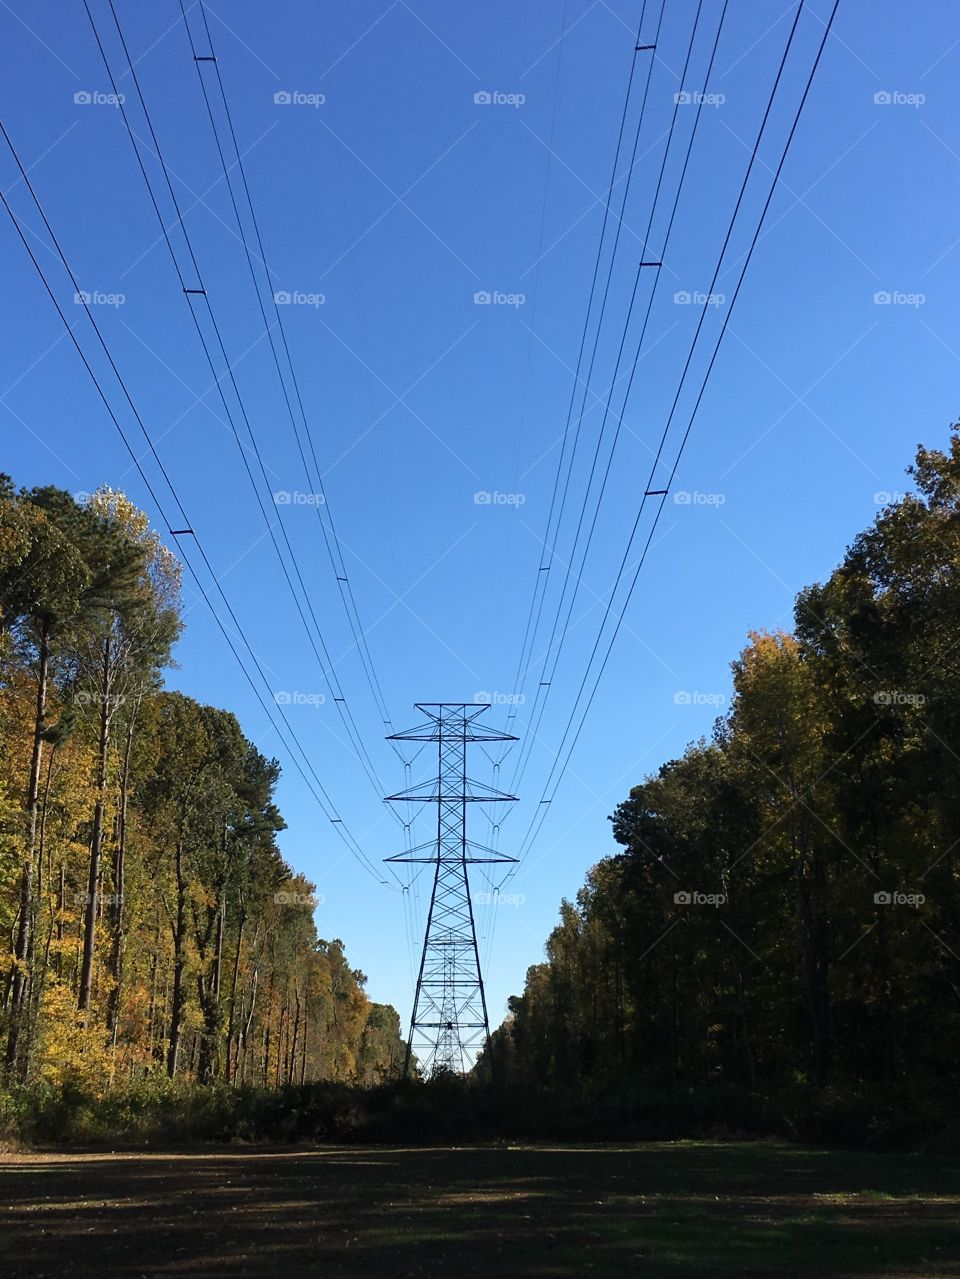 Power lines and towers